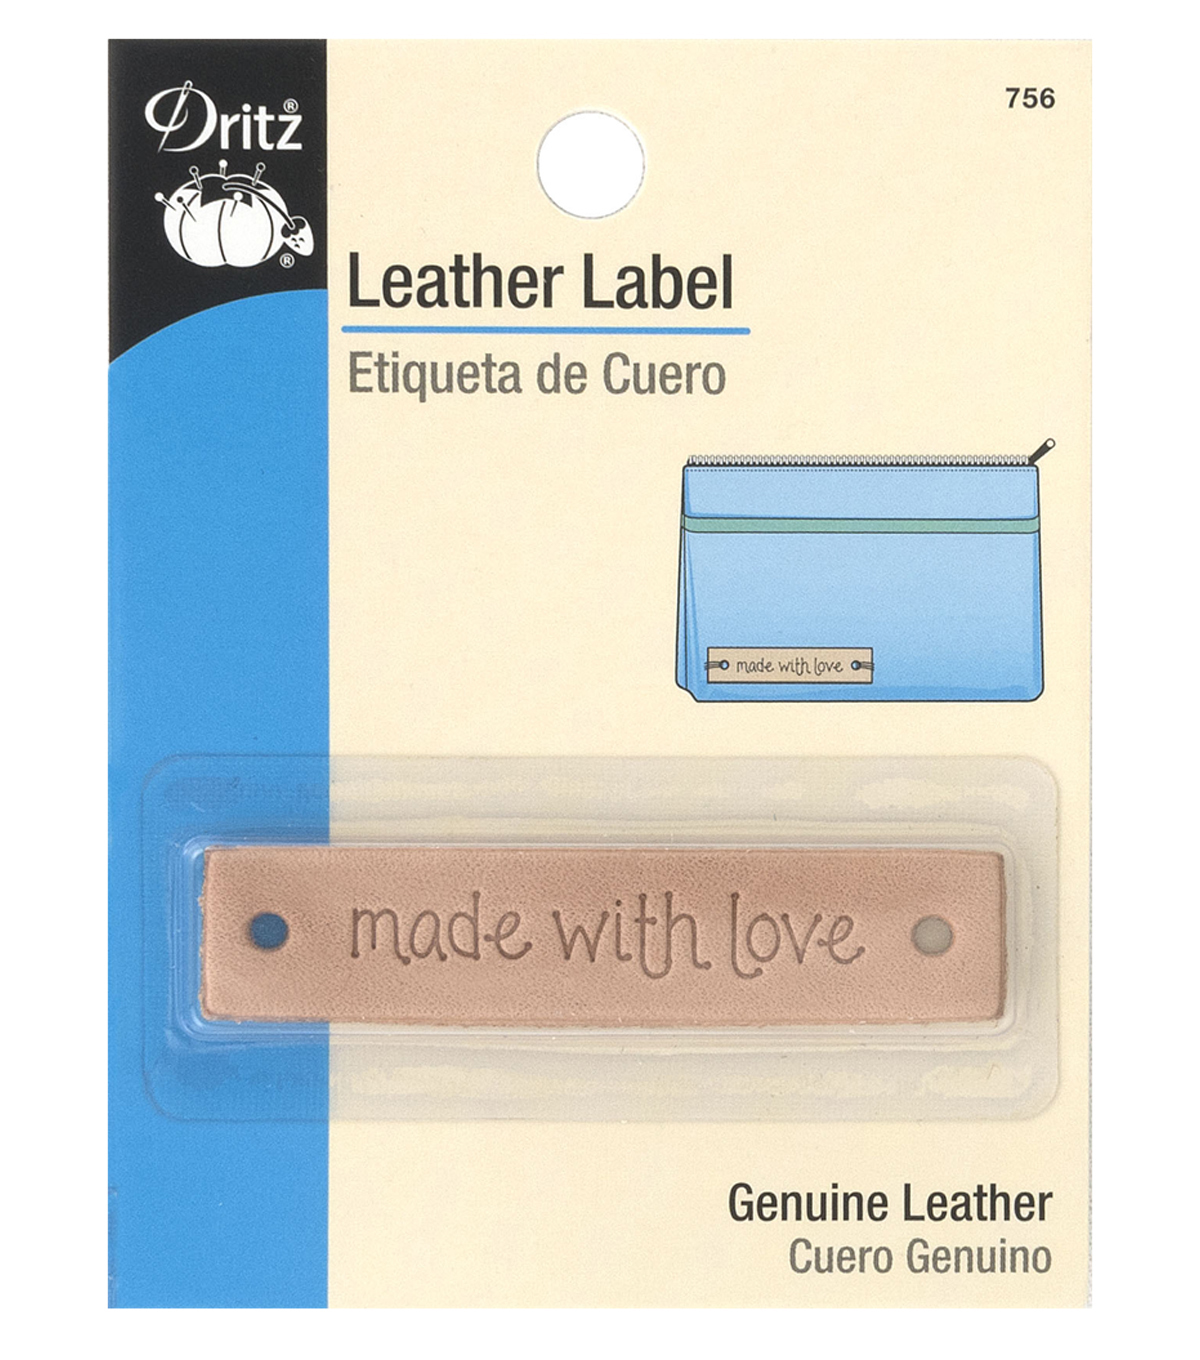 Dritz Leather Rectangle Label-made with love